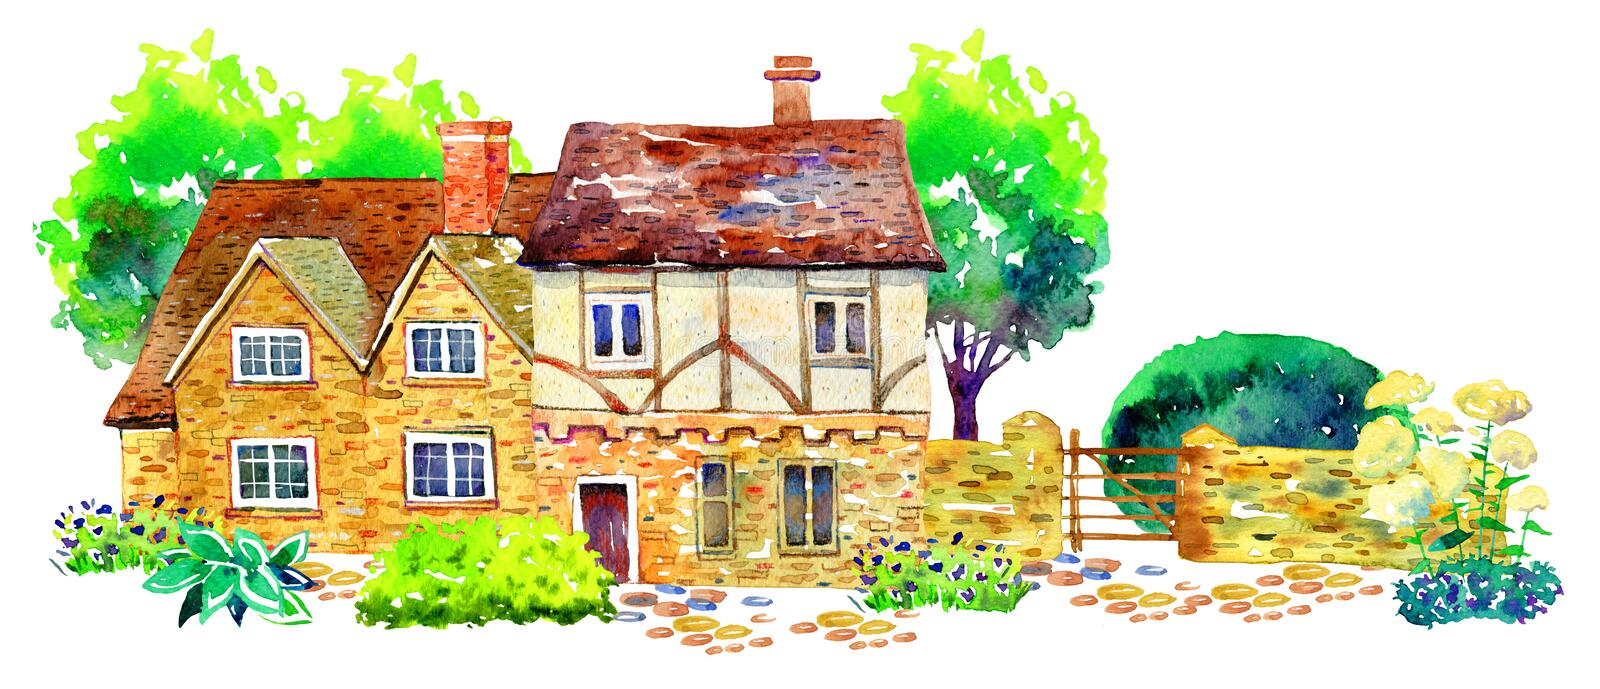 Scene with two countryhouses, fence, trees, bushes and plants. Watercolor old stone europe house. Hand drawn illustration royalty free illustration